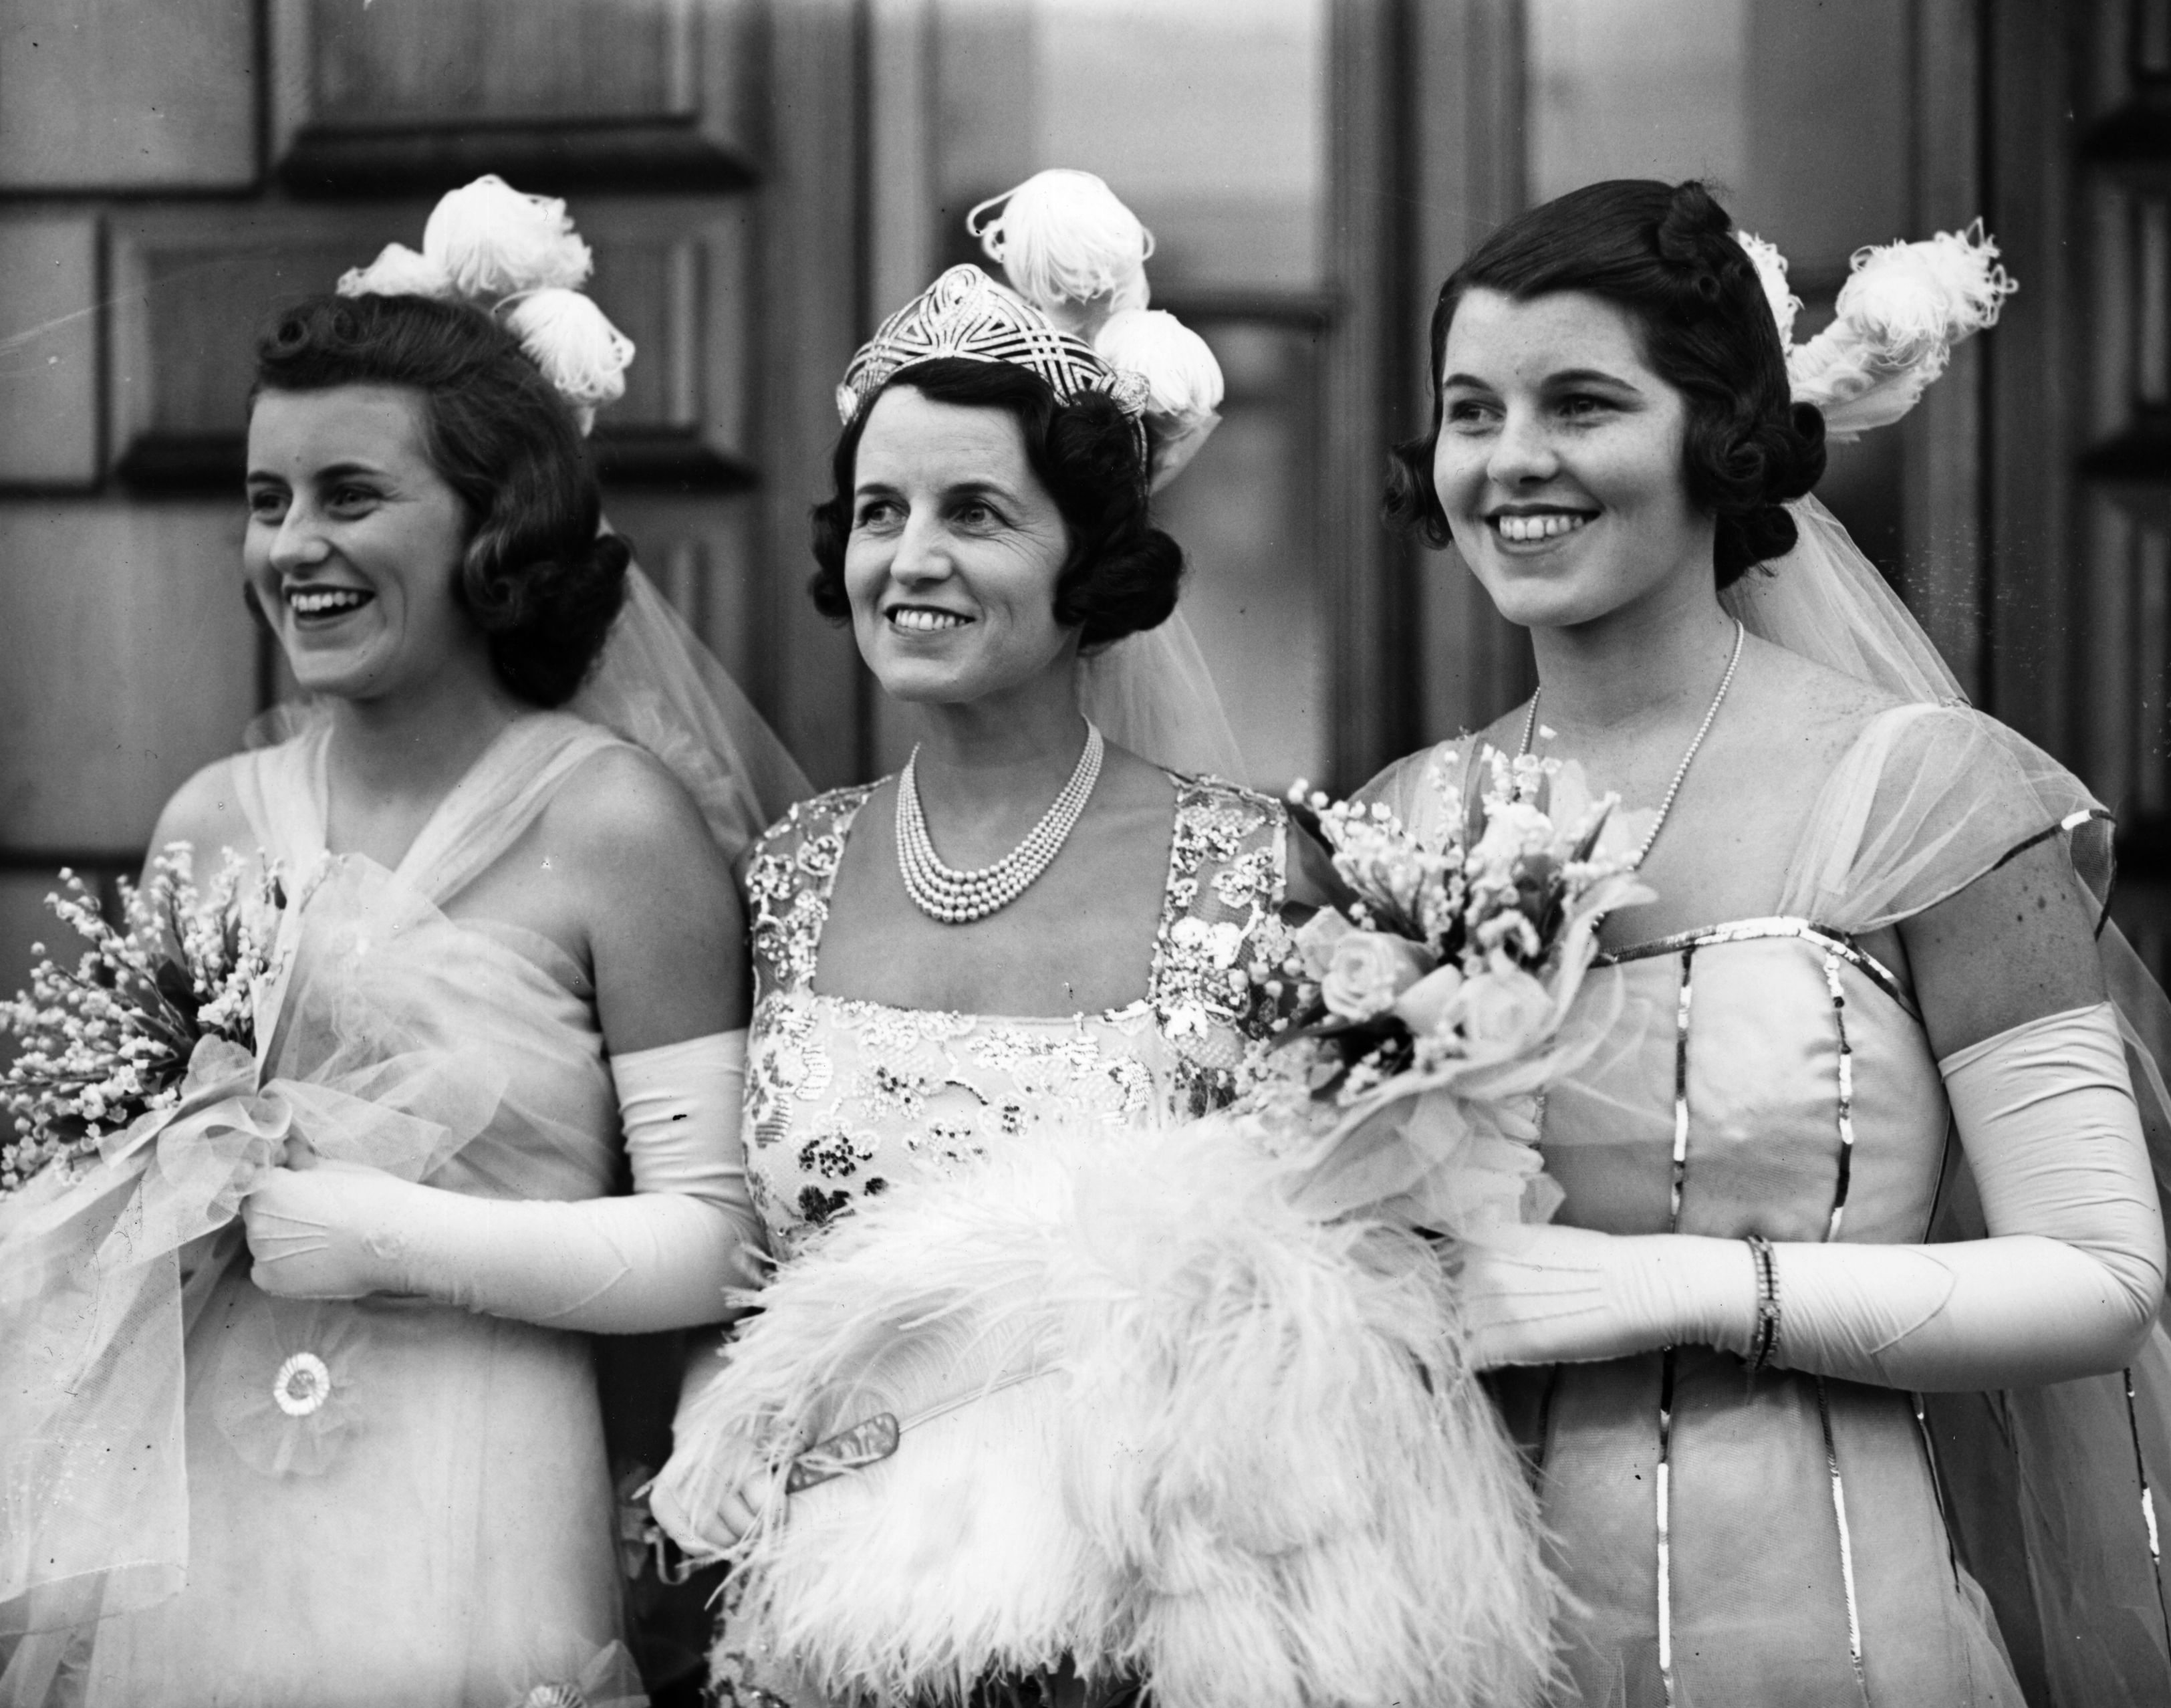 Rosemary Kennedy (right), the eldest Kennedy daughter. Pictured here with her mother Rose (centre) and sister Kathleen, during the family's residency in Britain in the late 1930s. (Photo by Keystone/Getty Images)